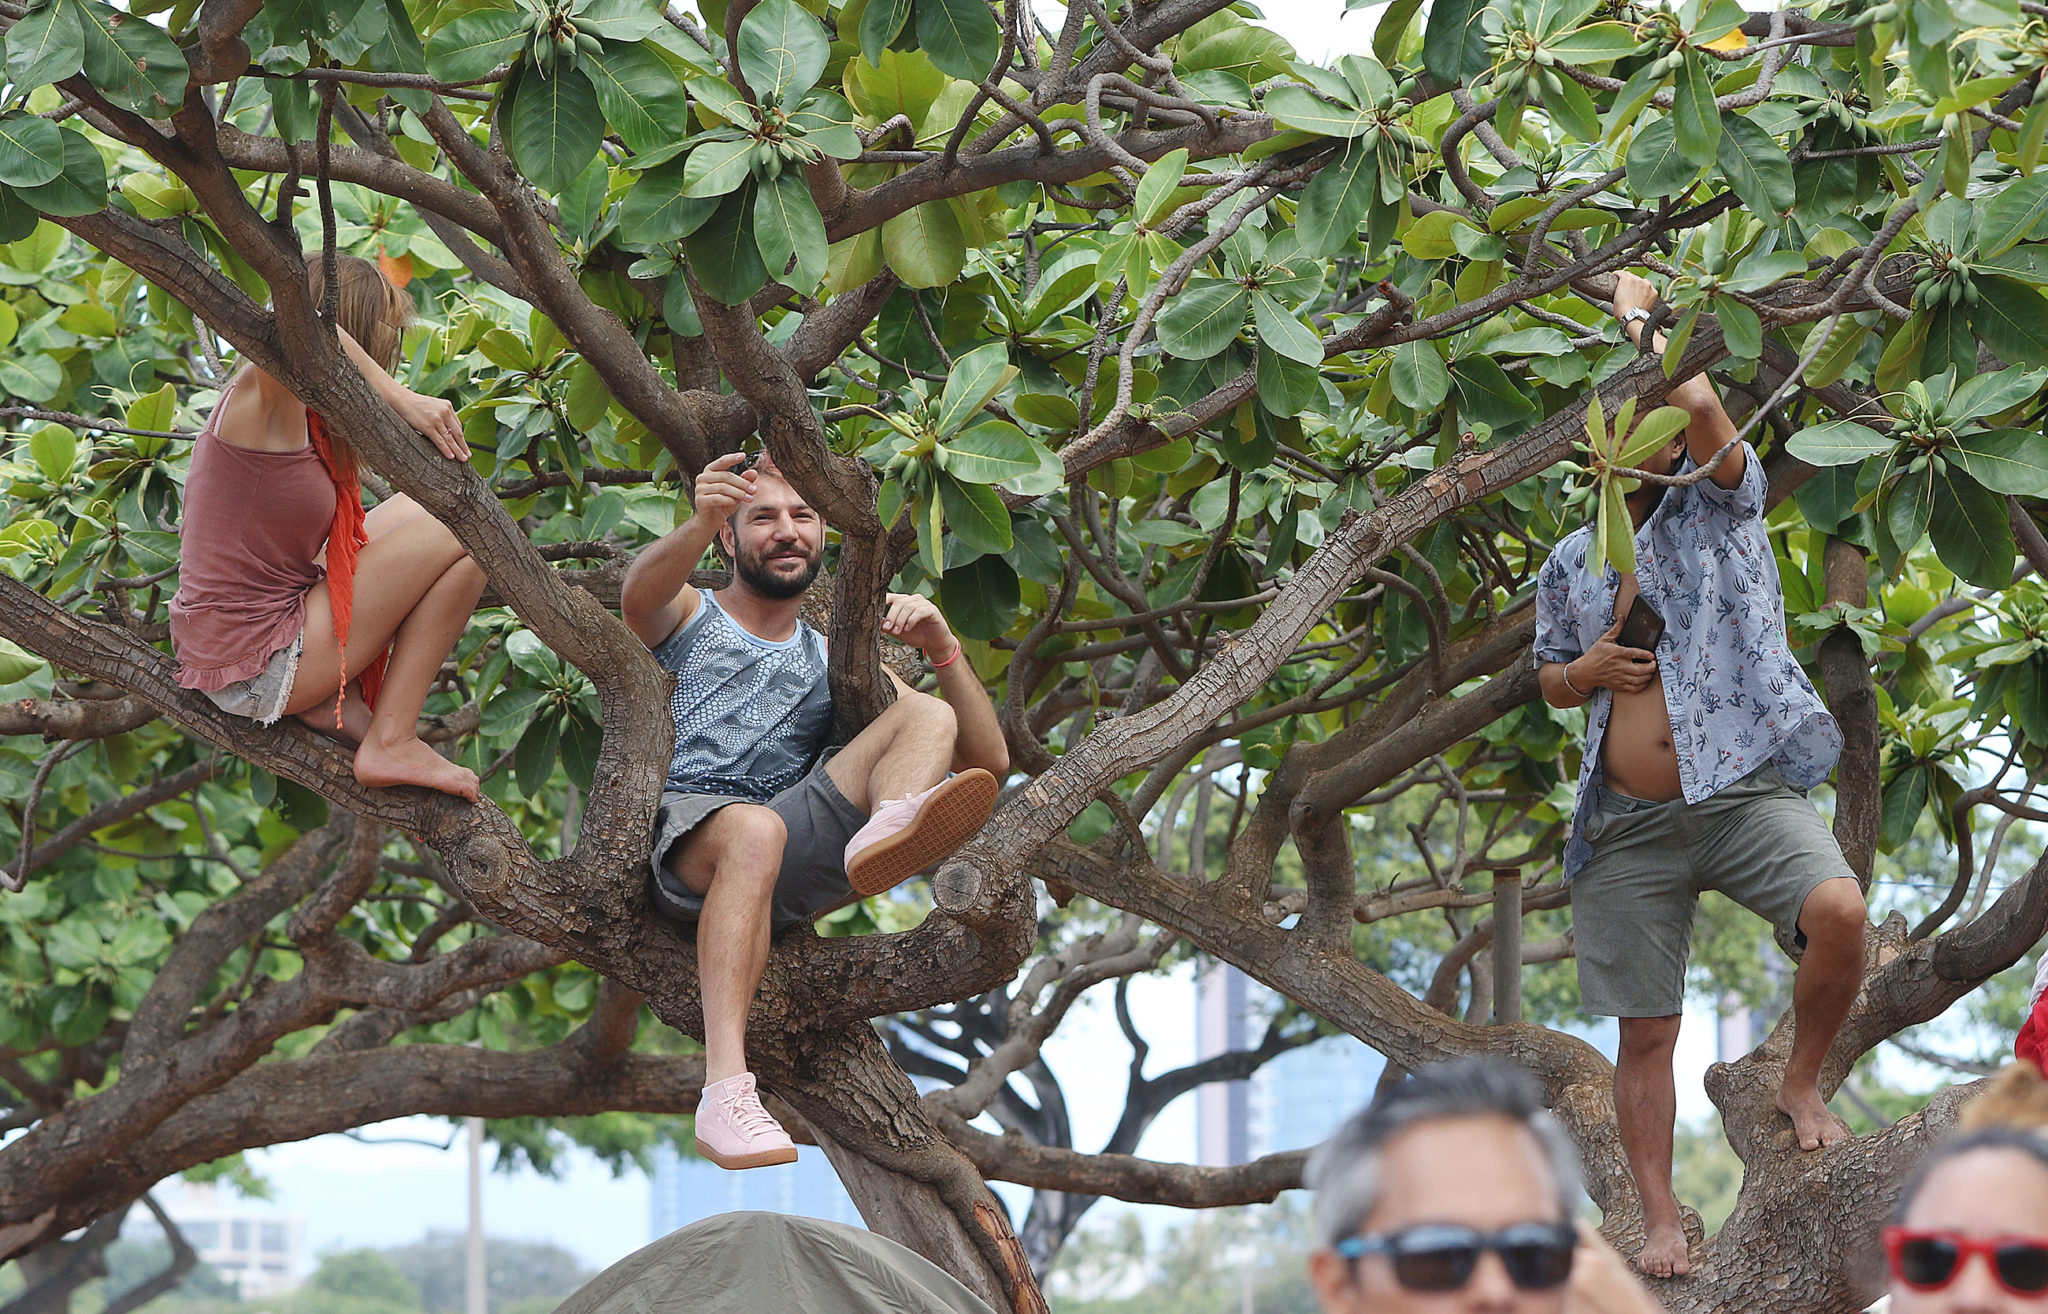 <p>Some people take to the trees to get a better view of Hokulea's approach. / Cory Lum</p>